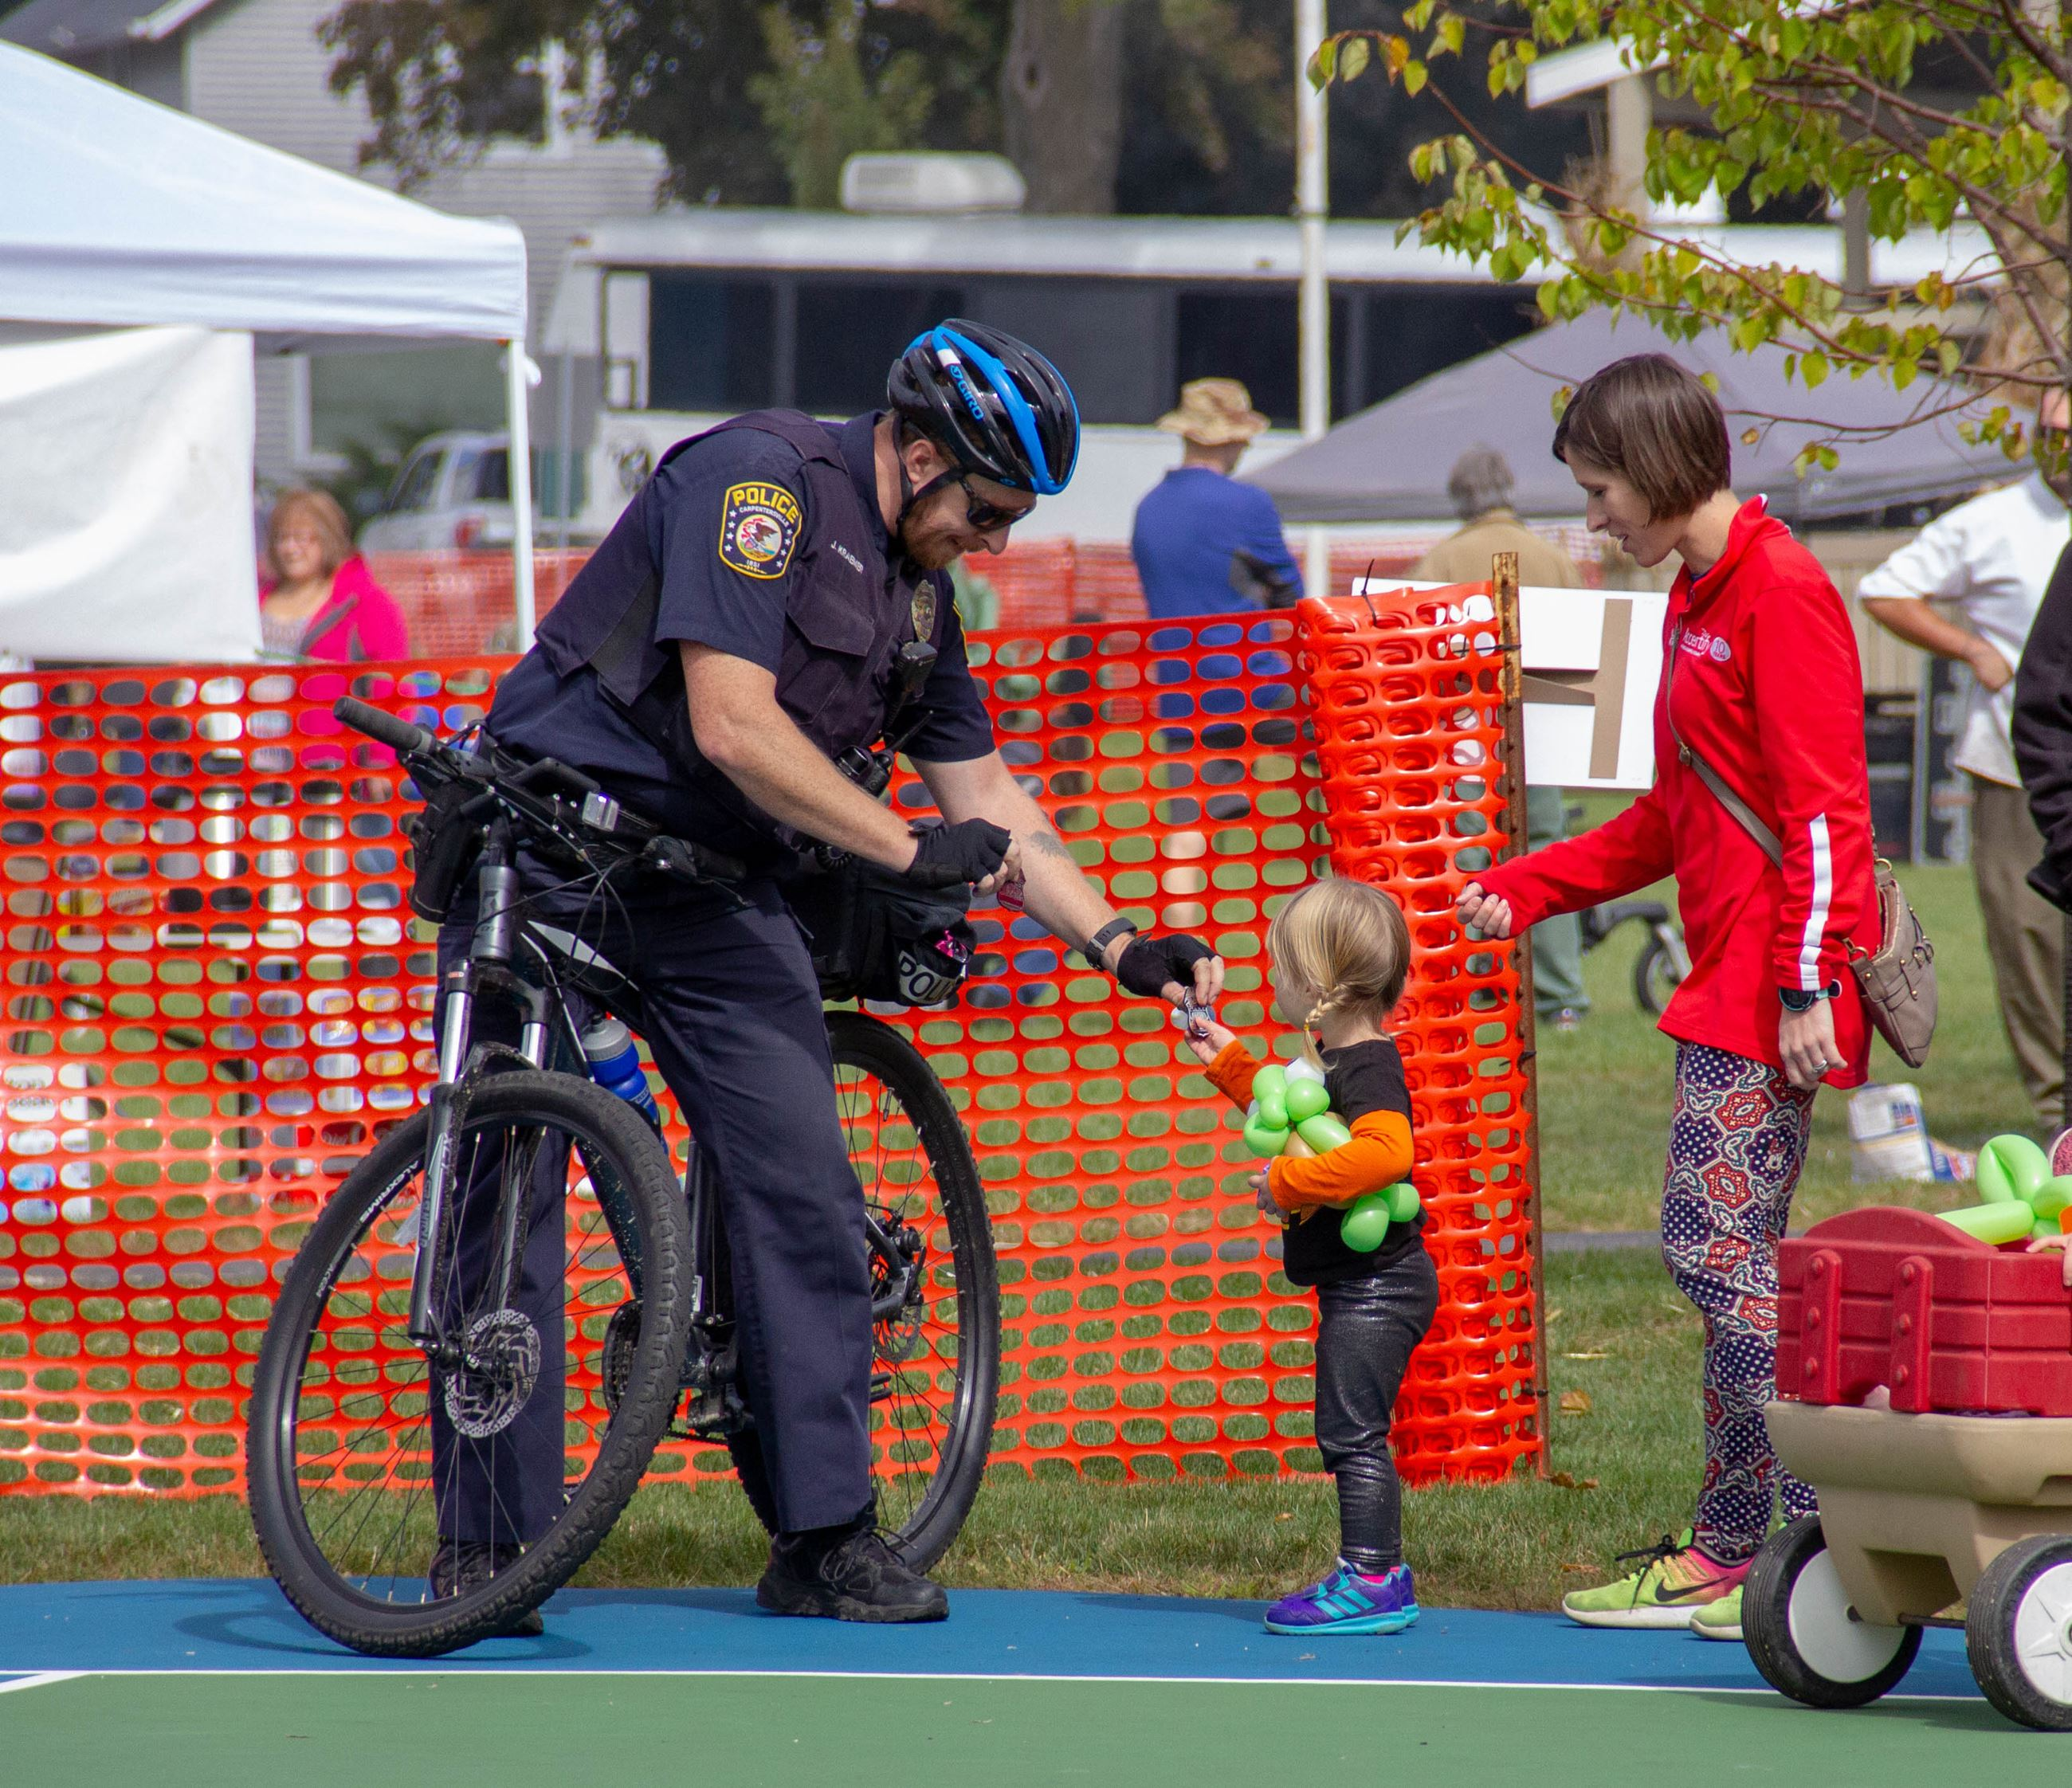 Bike Patrol Officer with Child